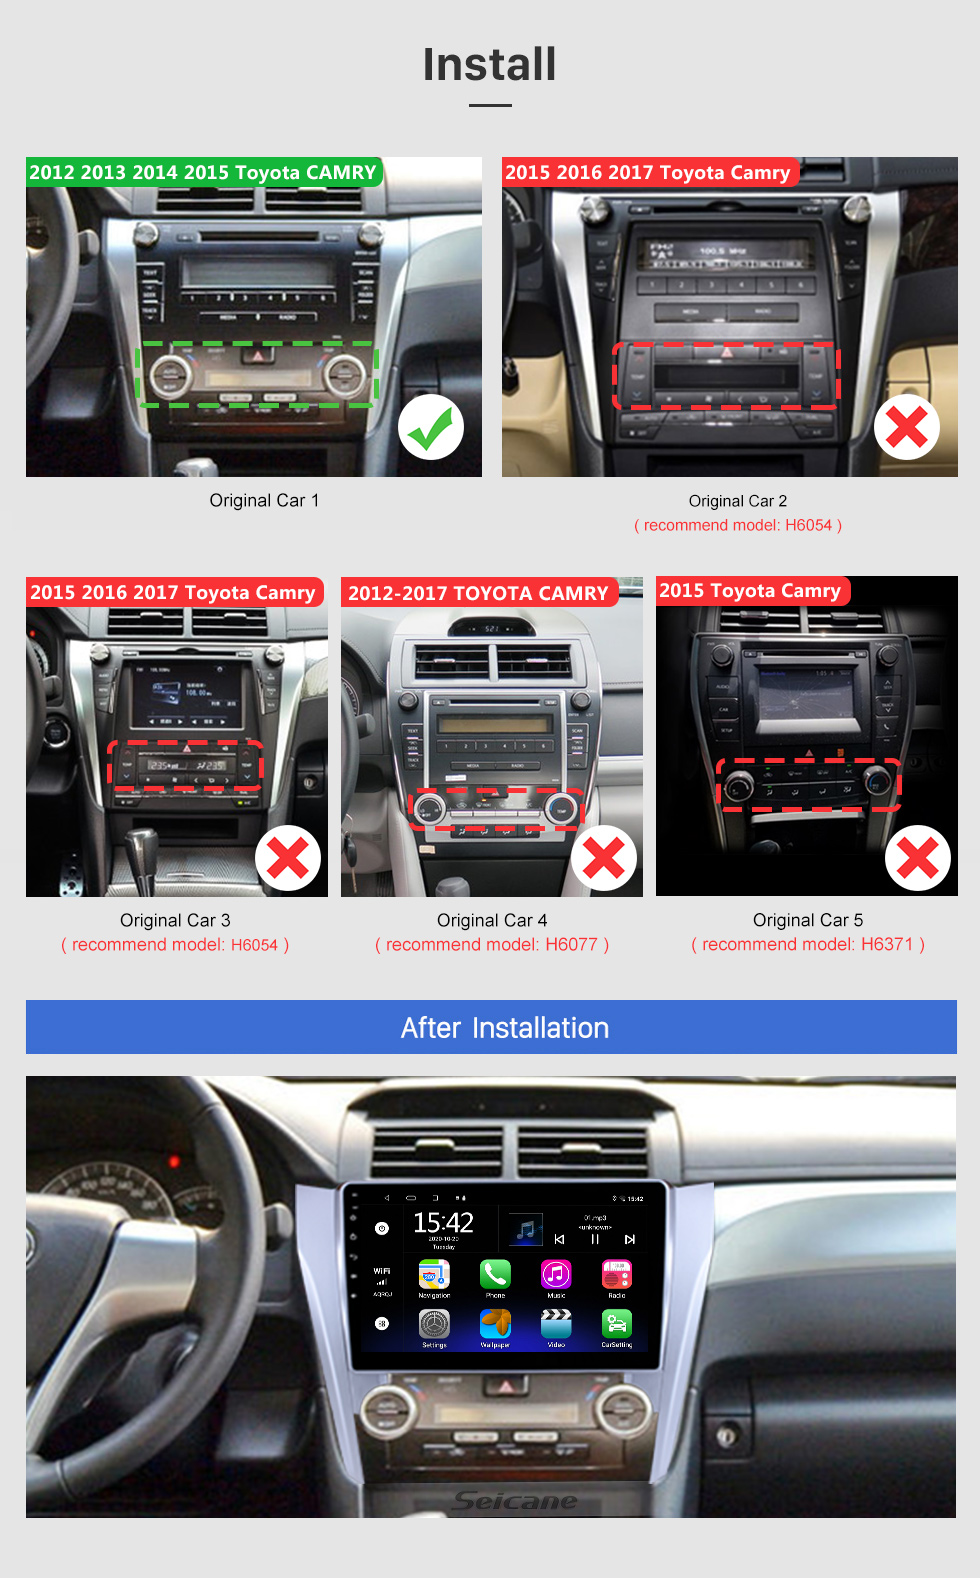 Seicane 10.1 inch Full Touchscreen 2012 2013 2014 2015 Toyota CAMRY Android 10.0 GPS Navigation System With Radio Rearview Camera 3G WiFi Bluetooth Mirror Link OBD2 DVR Steering wheel control